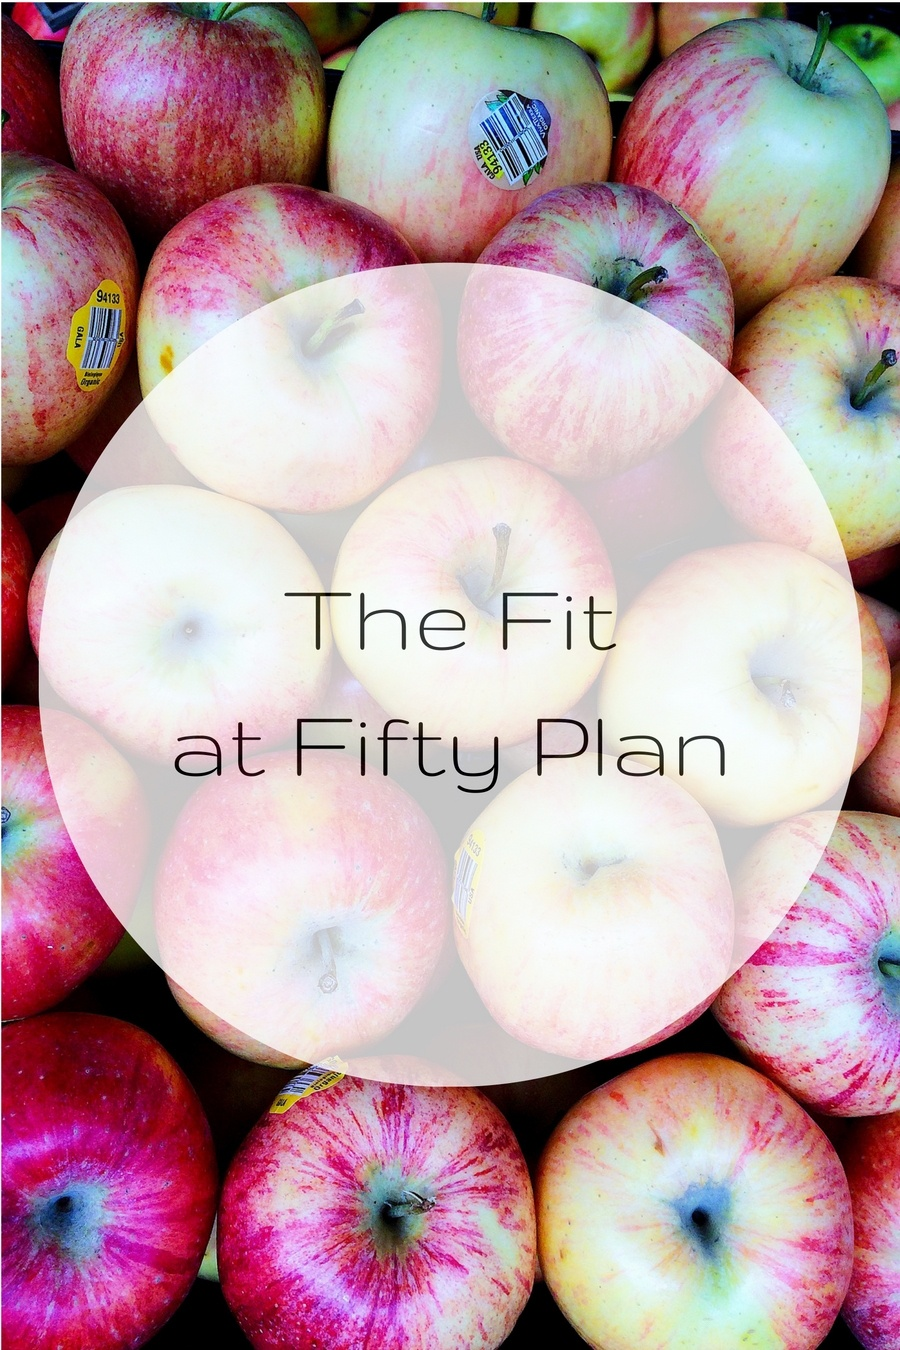 The Fit at Fifty Plan